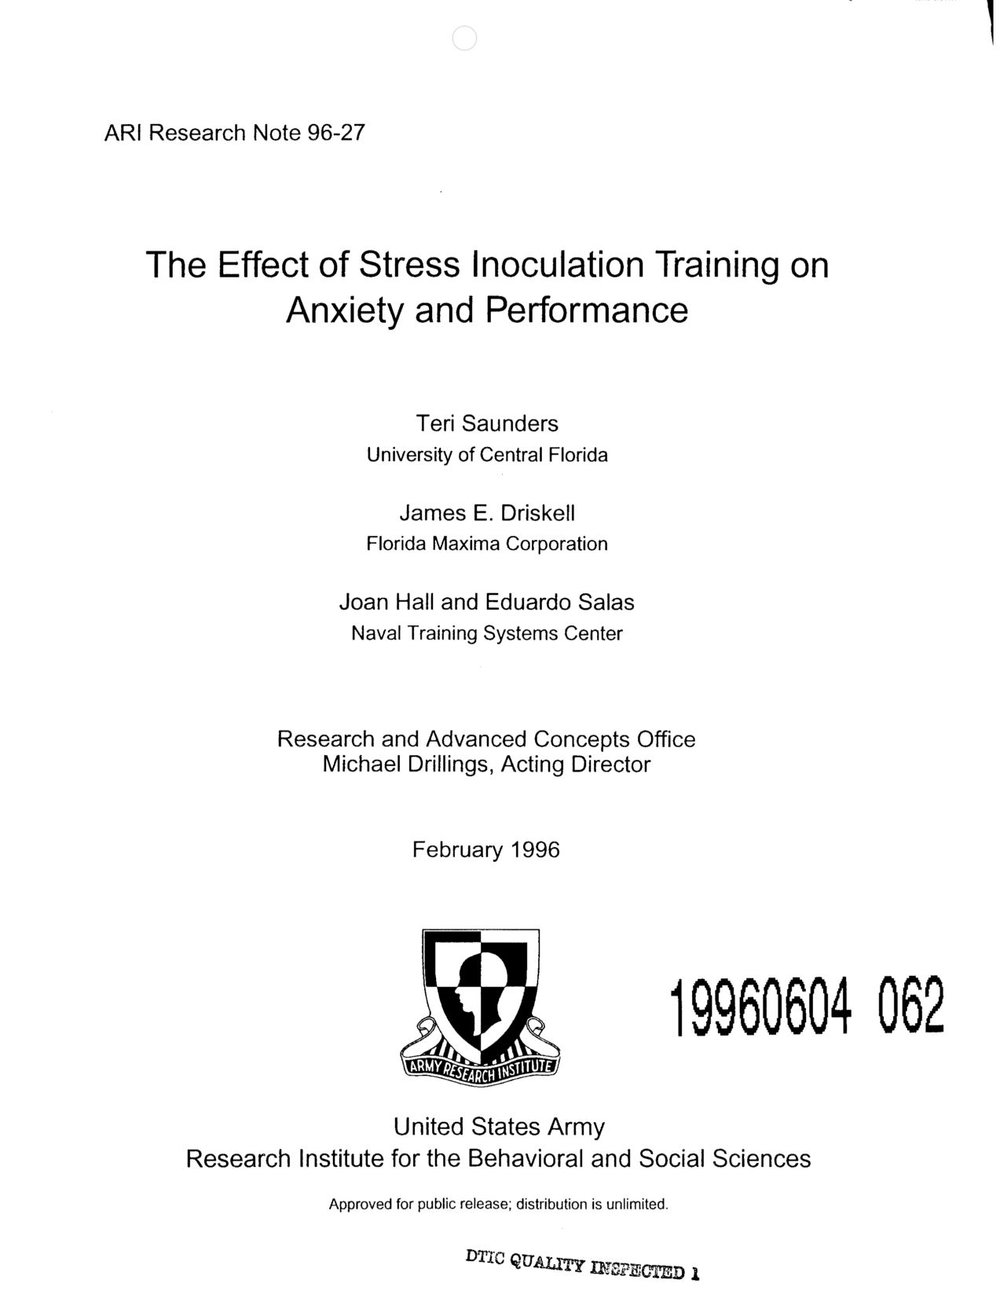 Saunders, T., Driskell, J. E., Johnston, J. H., & Salas, E. (1996). The effect of stress inoculation training on anxiety and performance. Journal of occupational health psychology, 1(2), 170.